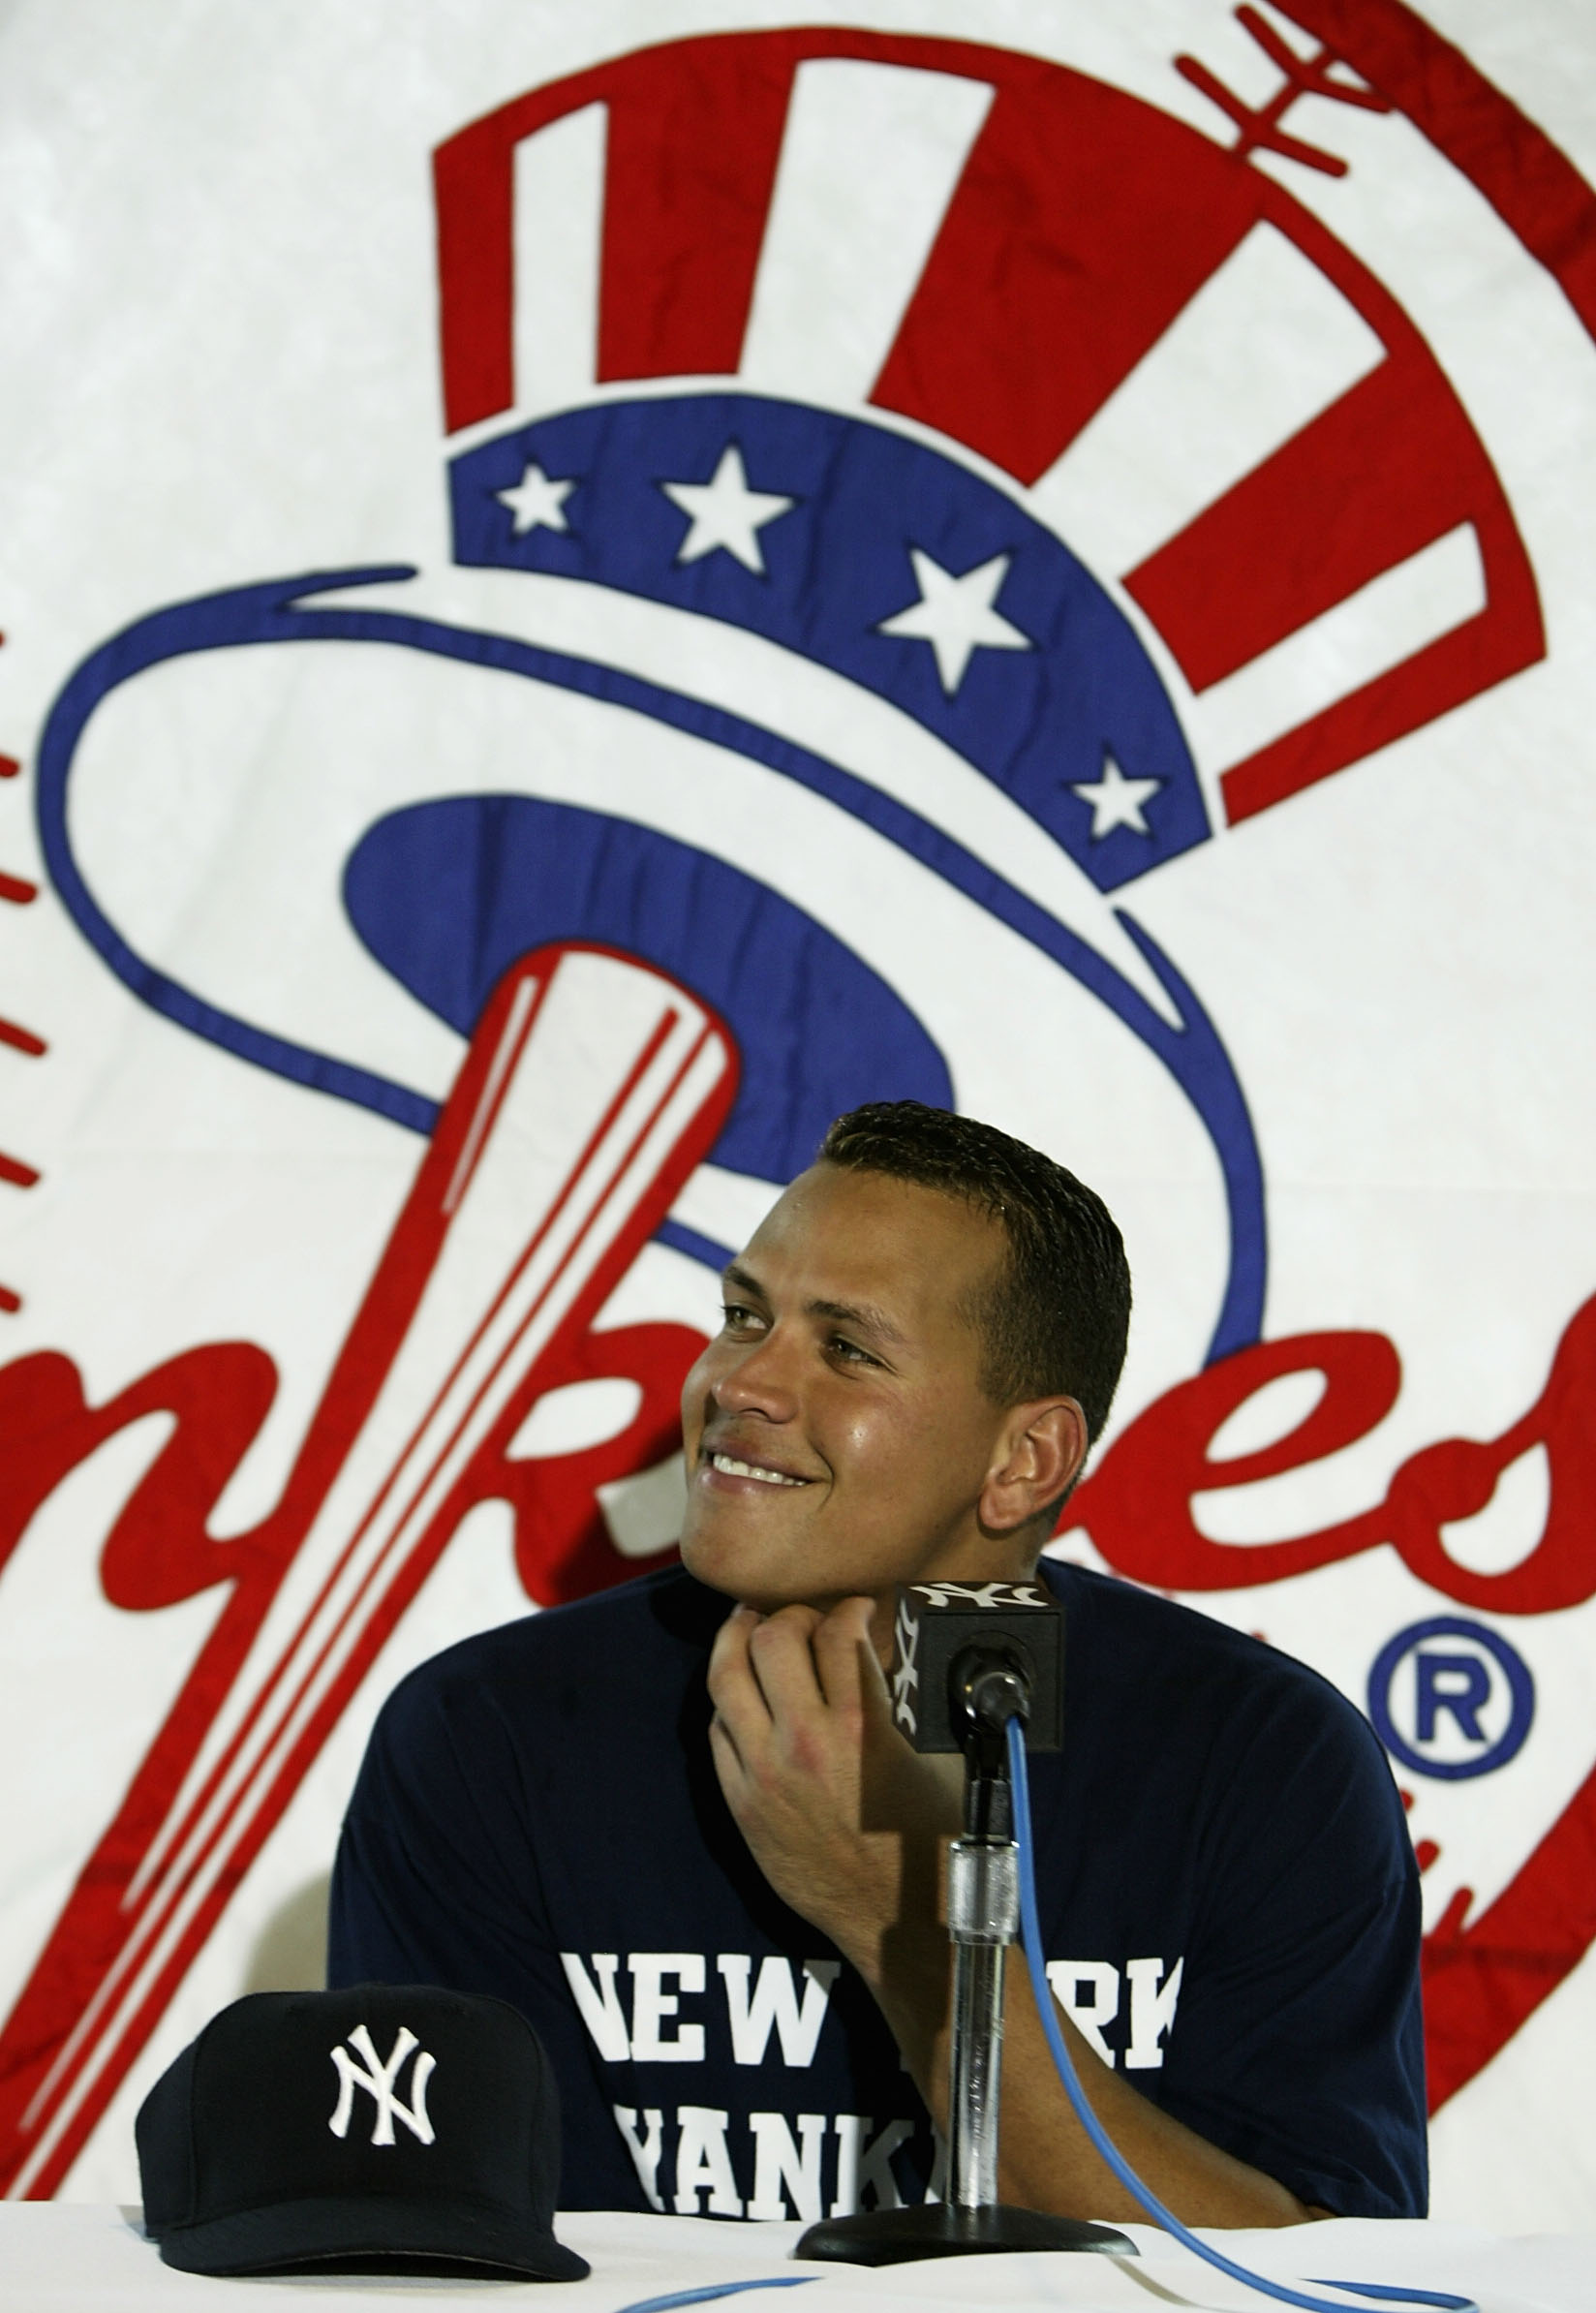 TAMPA, FL - FEBRUARY 24:  Alex Rodriguez #13 of the New York Yankees during a press conference after practice on February 24, 2004 at the Yankees spring training complex in Tampa, Florida.  (Photo by Ezra Shaw/Getty Images)